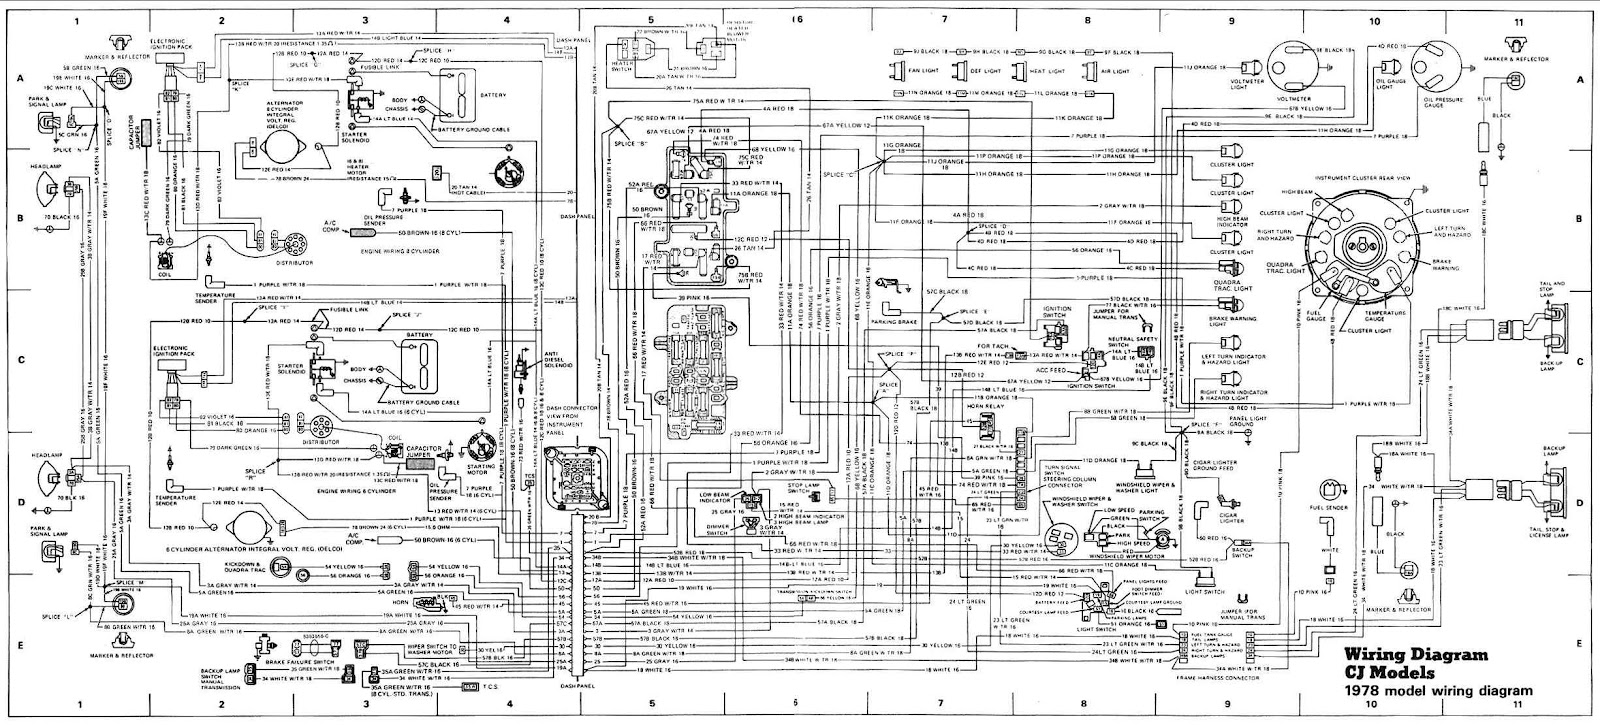 chevy cobalt radio wiring diagram images diagram chevy wiring diagram on for 2006 jeep grand